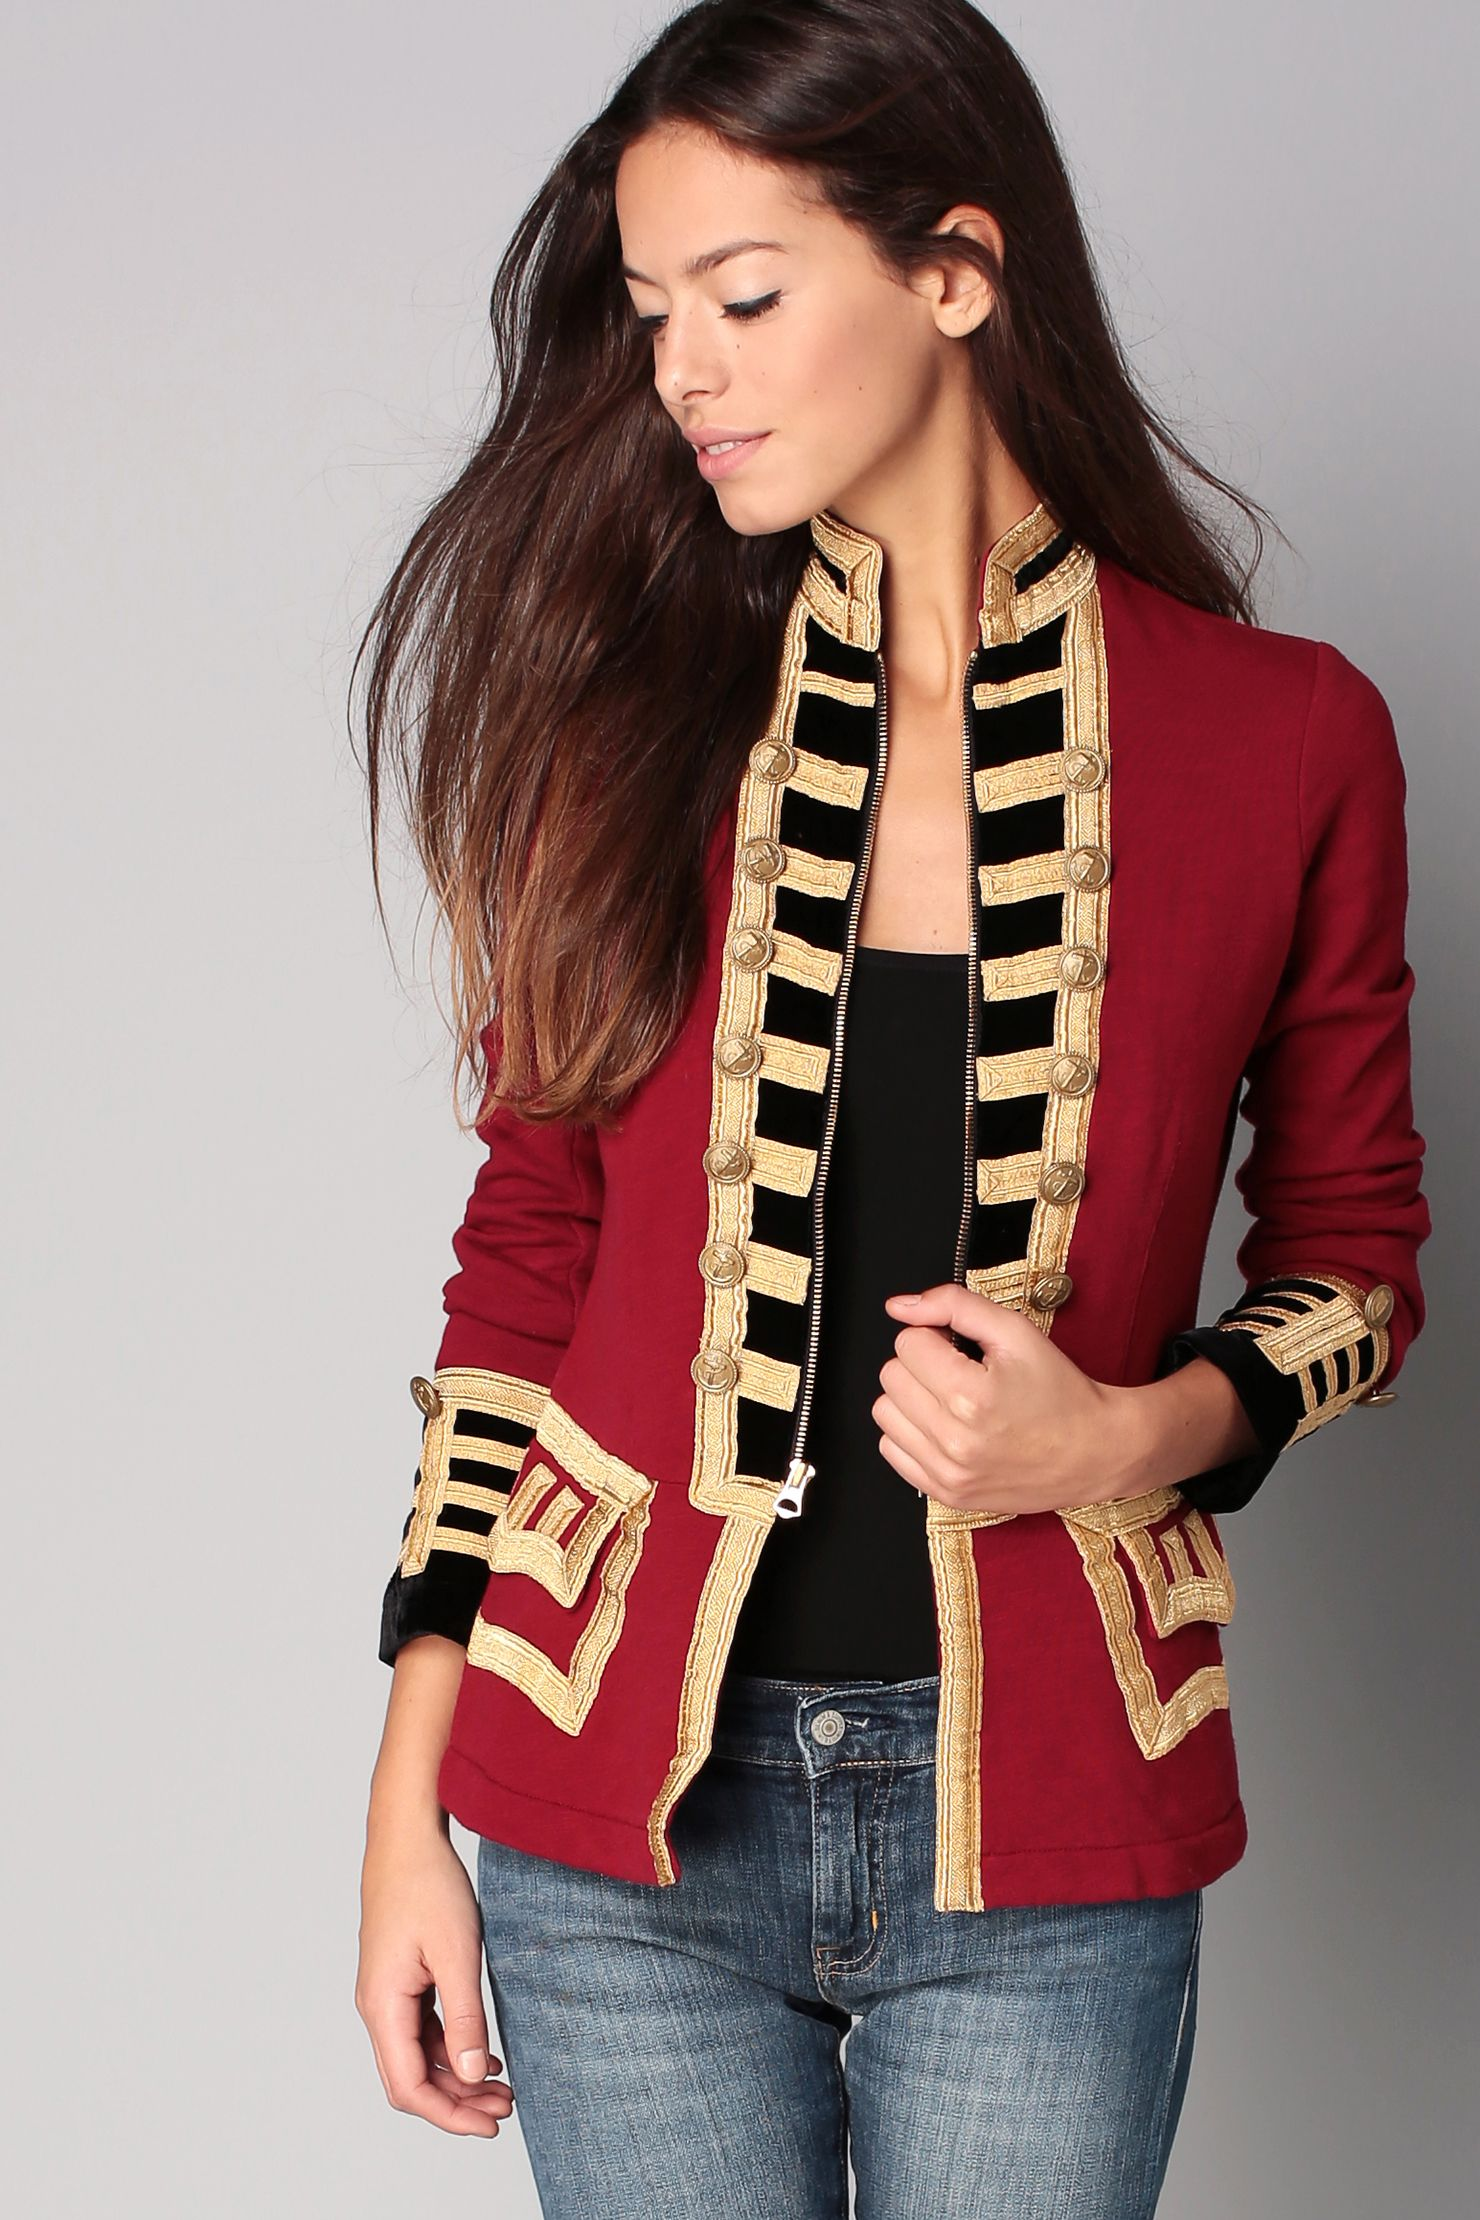 89f56b33a2af Veste rouge et dorée Officier Denim and Supply by Ralph Lauren sur  MonShowroom.com